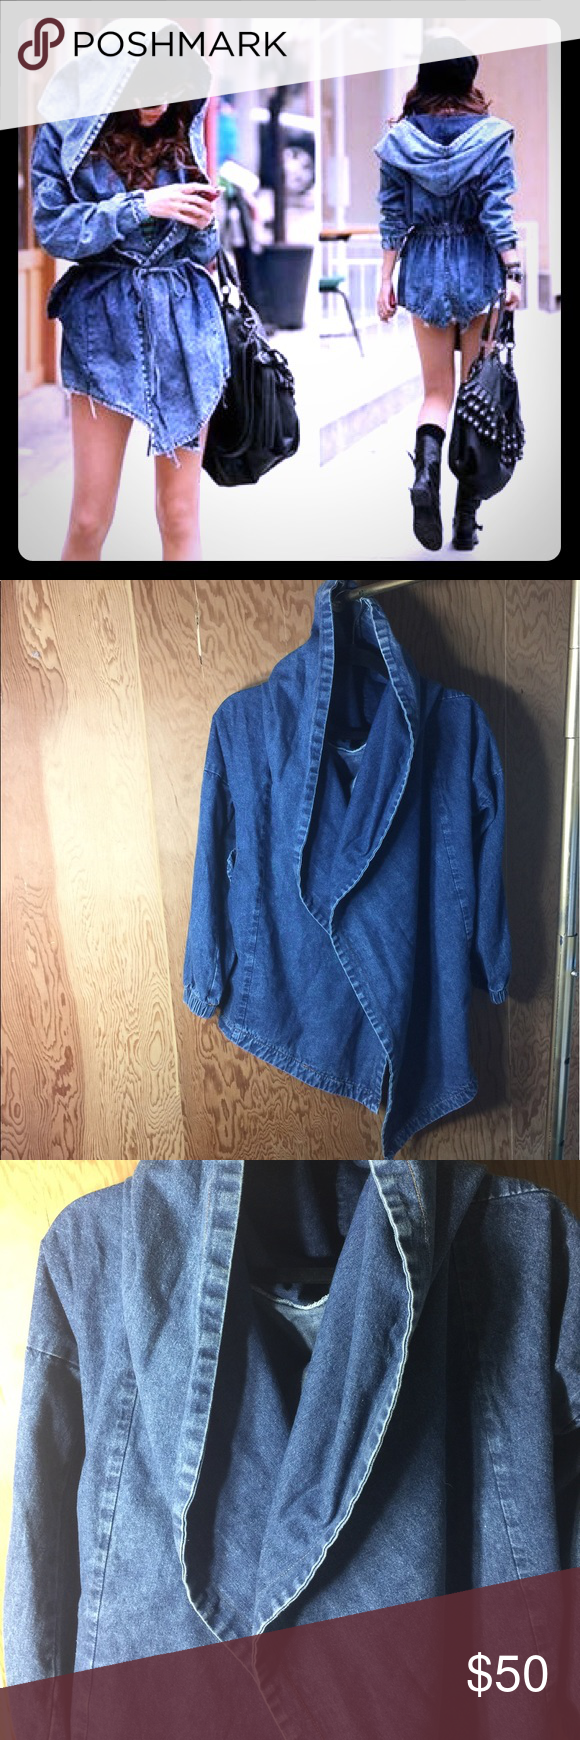 Denim Hooded Jacket Oversized Hood. All blue denim. Two front pockets. Back tie for adjustment. Thigh length. Worn once to the airport. Cute & lowkey. Jackets & Coats Jean Jackets